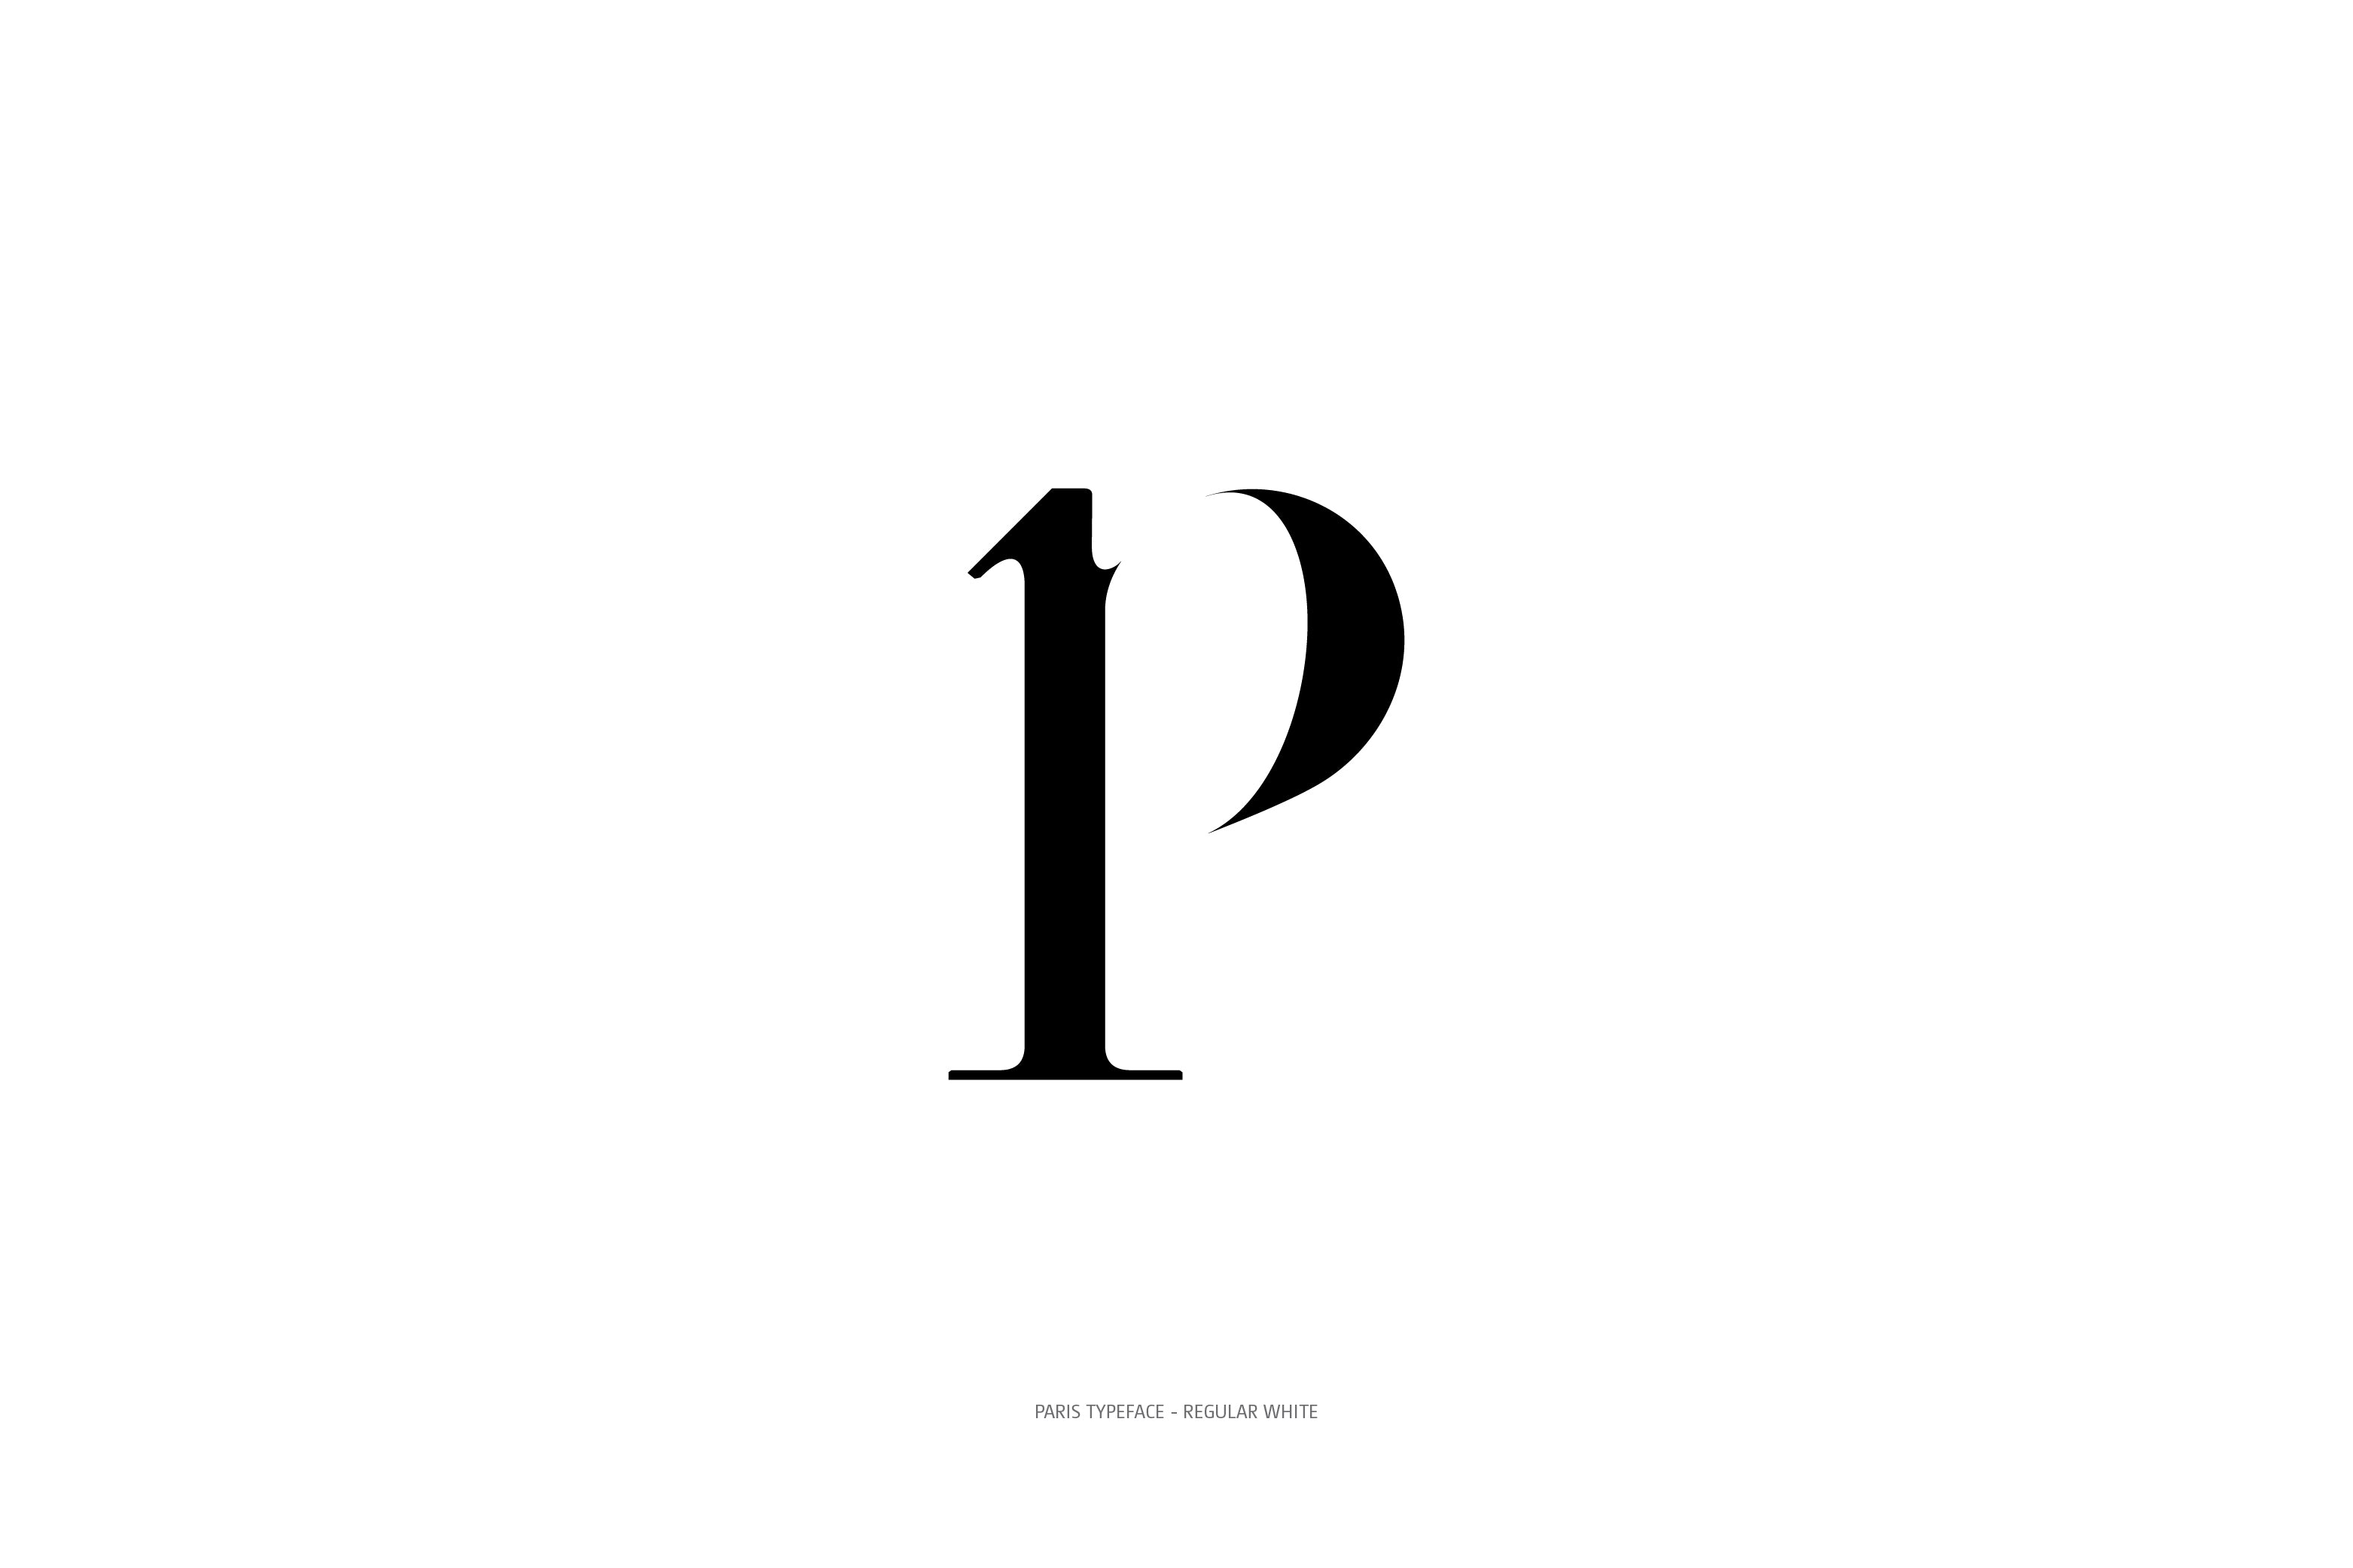 Paris Typeface Regular White p